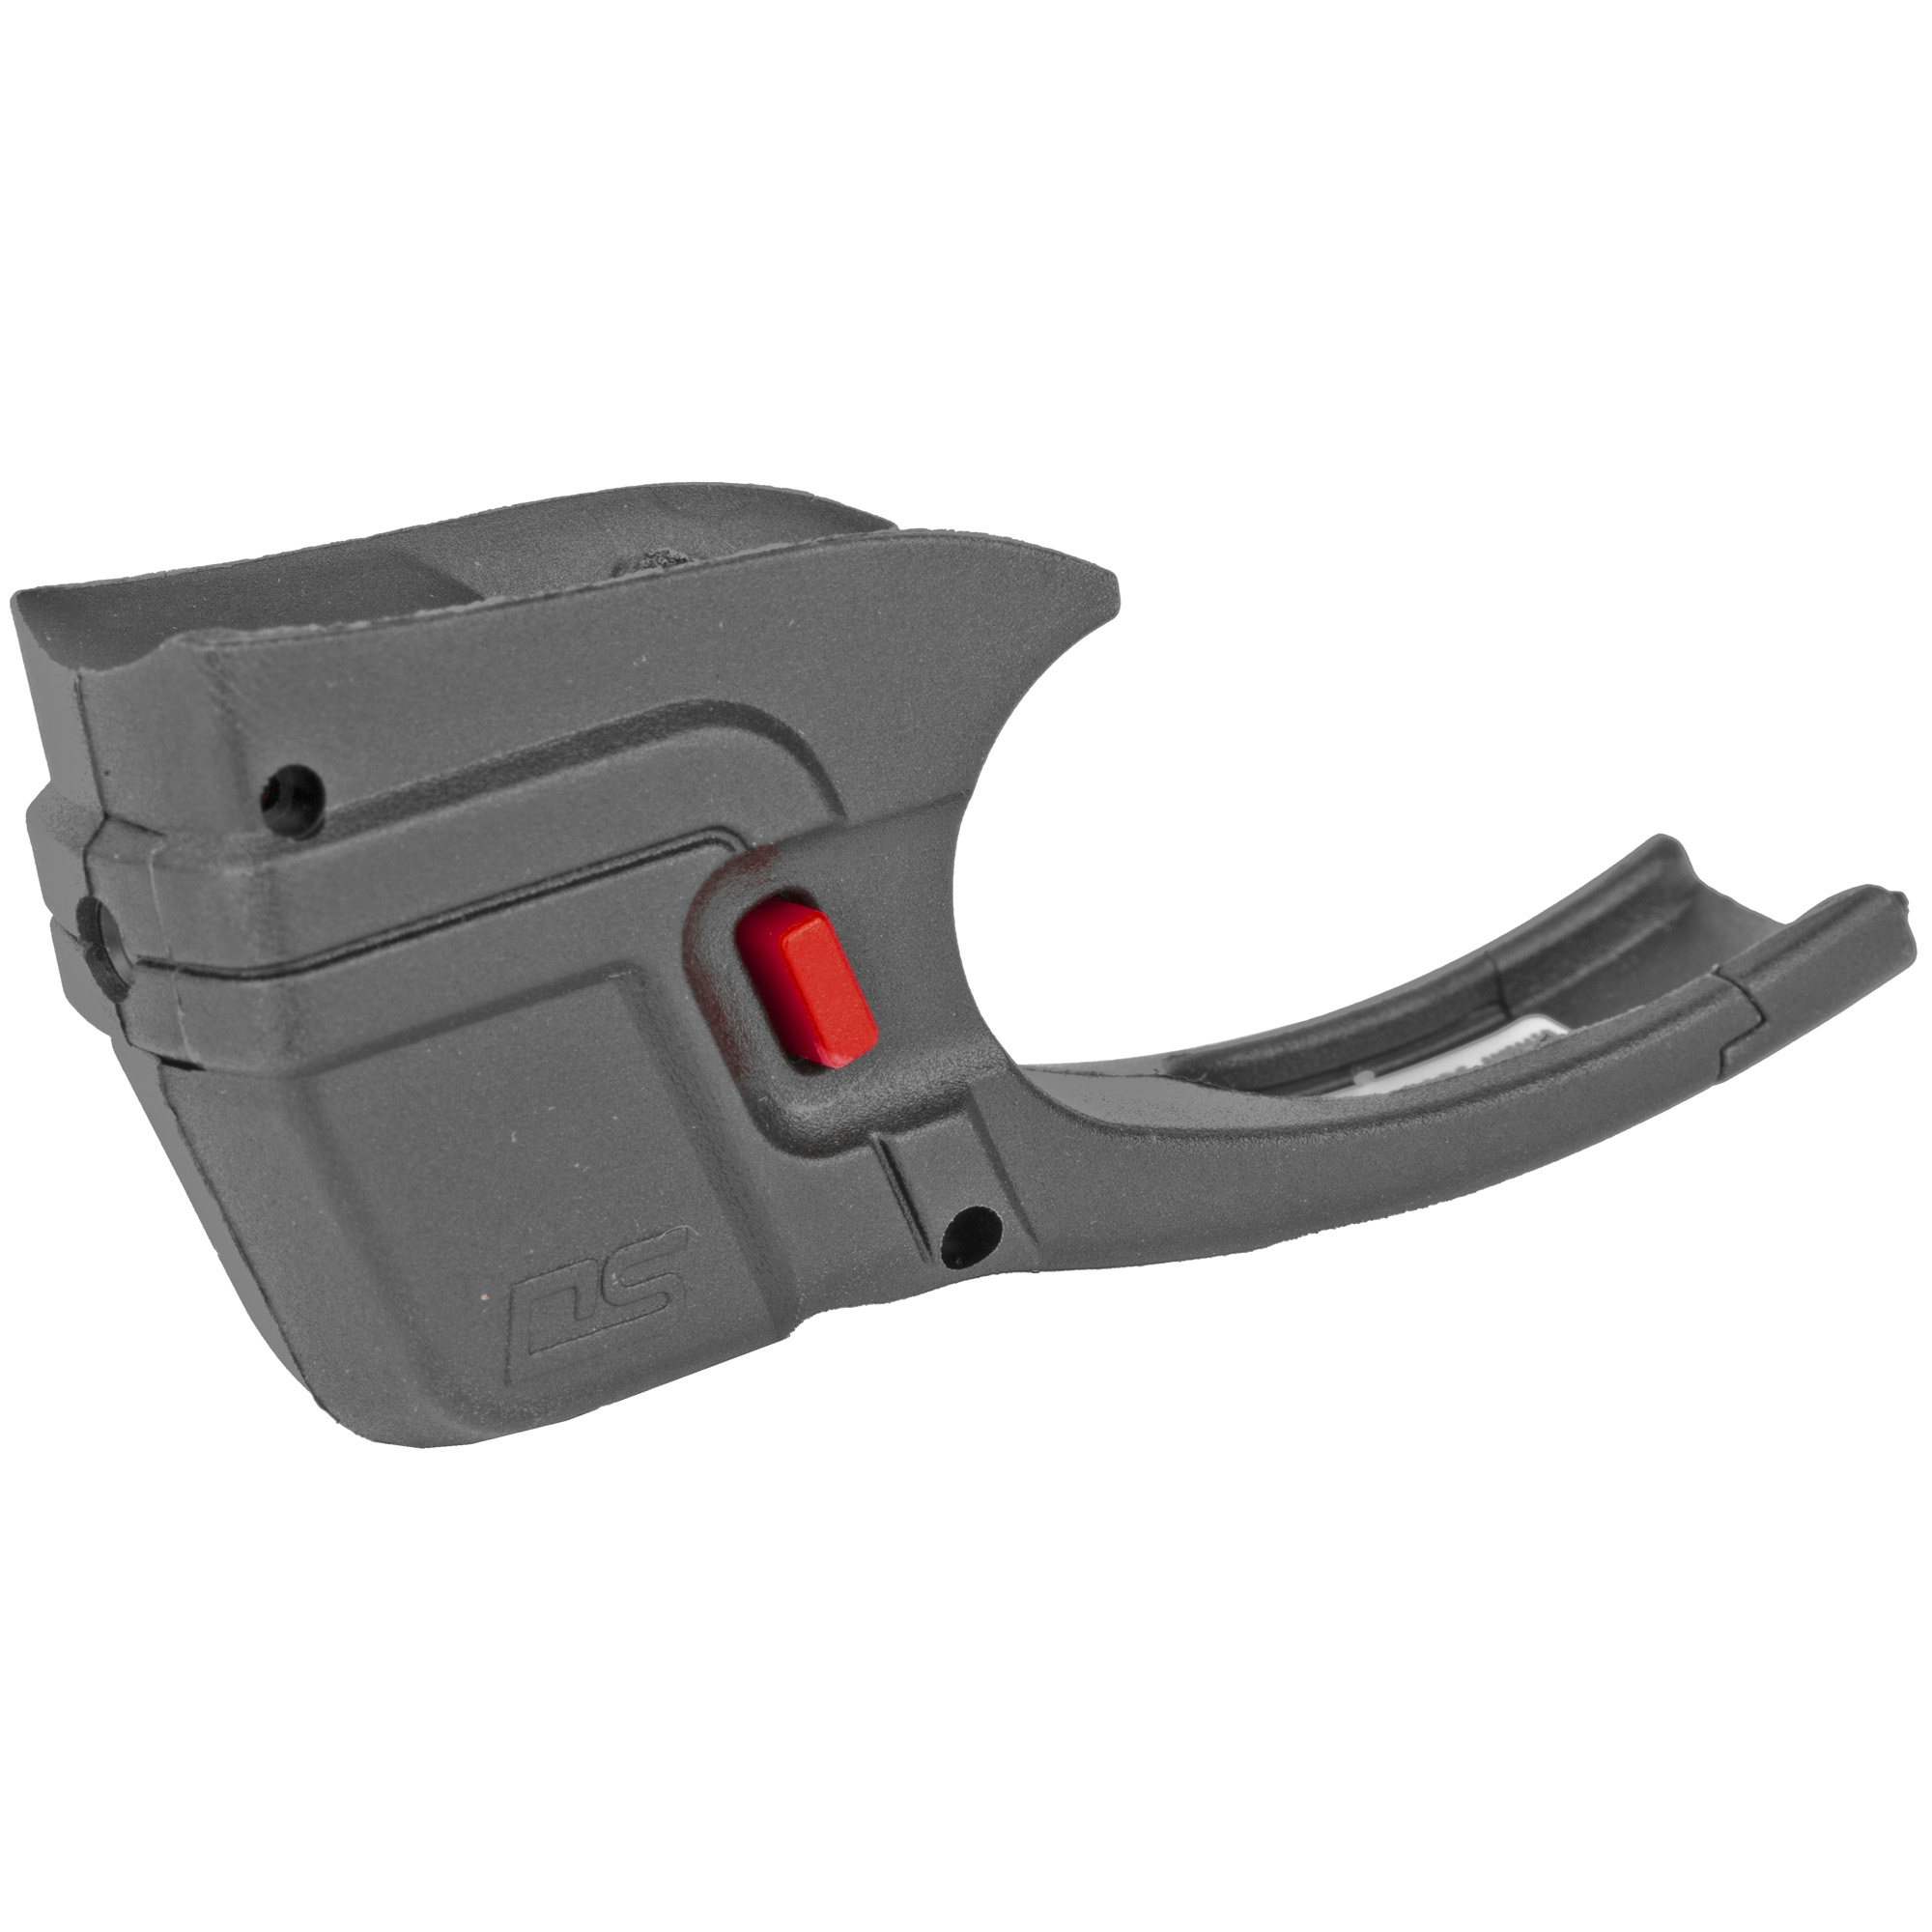 """The DS-122 Defender Series(TM) Accu-Guard(TM) Laser Sight by Crimson Trace fits Ruger LCP pistols. The Defender Series sets a new standard in laser sighting systems by providing cutting edge design"""" superior technology"""" and an affordable price tag. The DS-122 features Beam Lock(TM) Adjustments so that the user can easily adjust laser sighting for both windage and elevation"""" and the unit is pre-sighted at the factory at 50 ft. The Dual Side N-Gage(TM) Activation Buttons provide a large"""" easy-to-find"""" bright red activation button"""" which emits a powerful (5mW peak"""" 620-670nm"""" Class 3R) red aiming laser."""